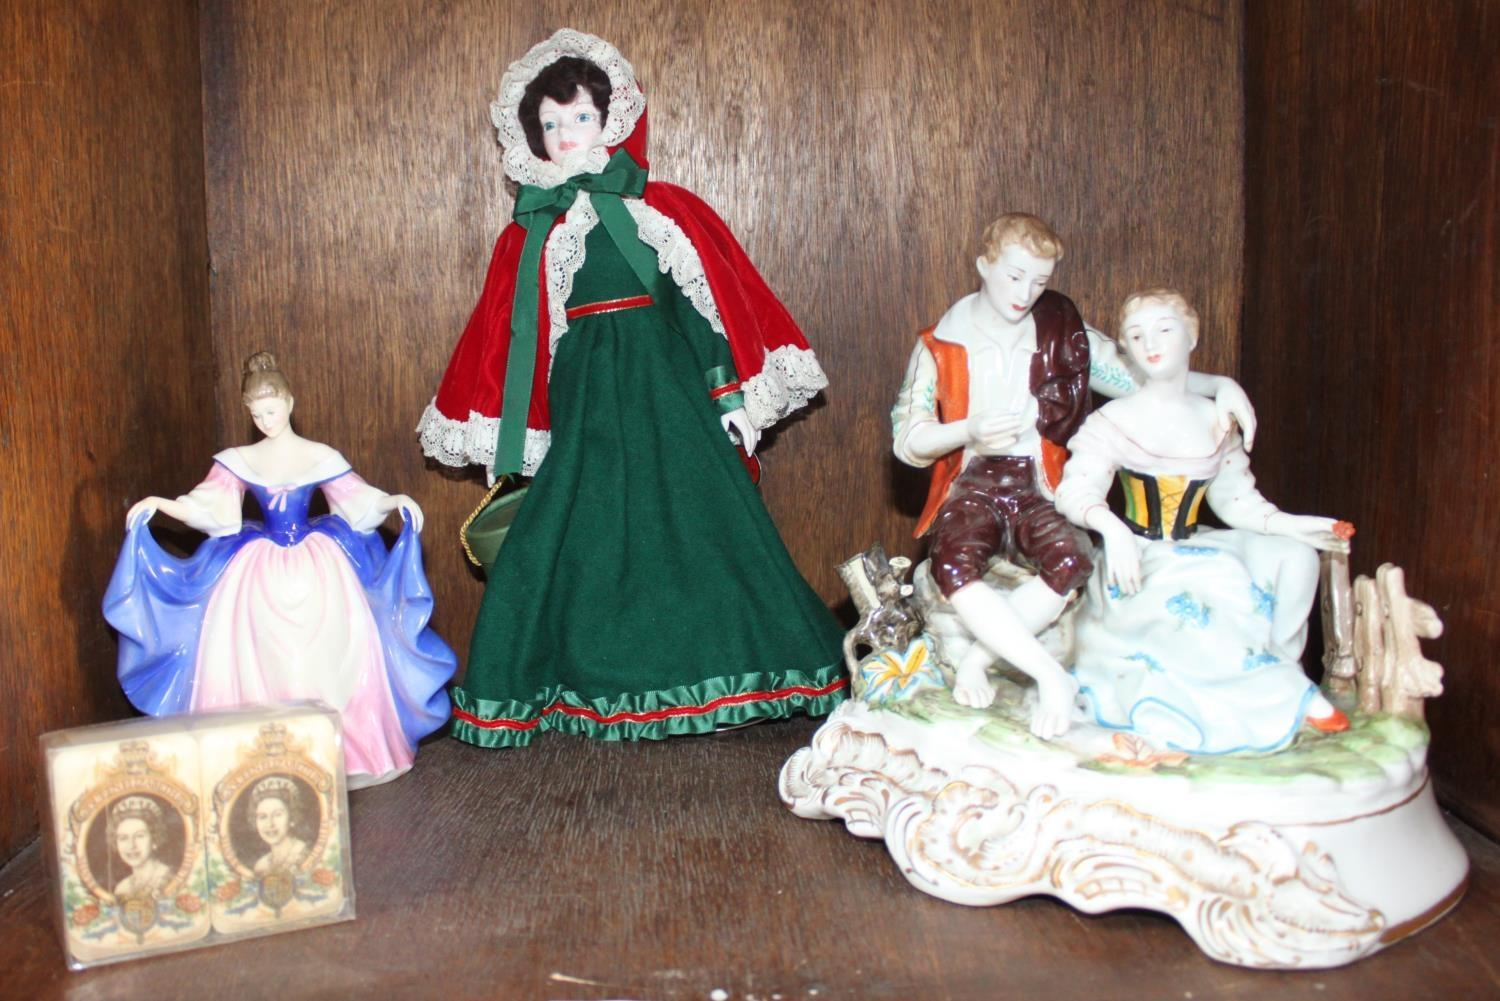 Lot 33 - SECTION 33. A Royal Doulton figure of a lady 'Sara HN3308' and a Royal Doulton 'Nisbet' Christmas